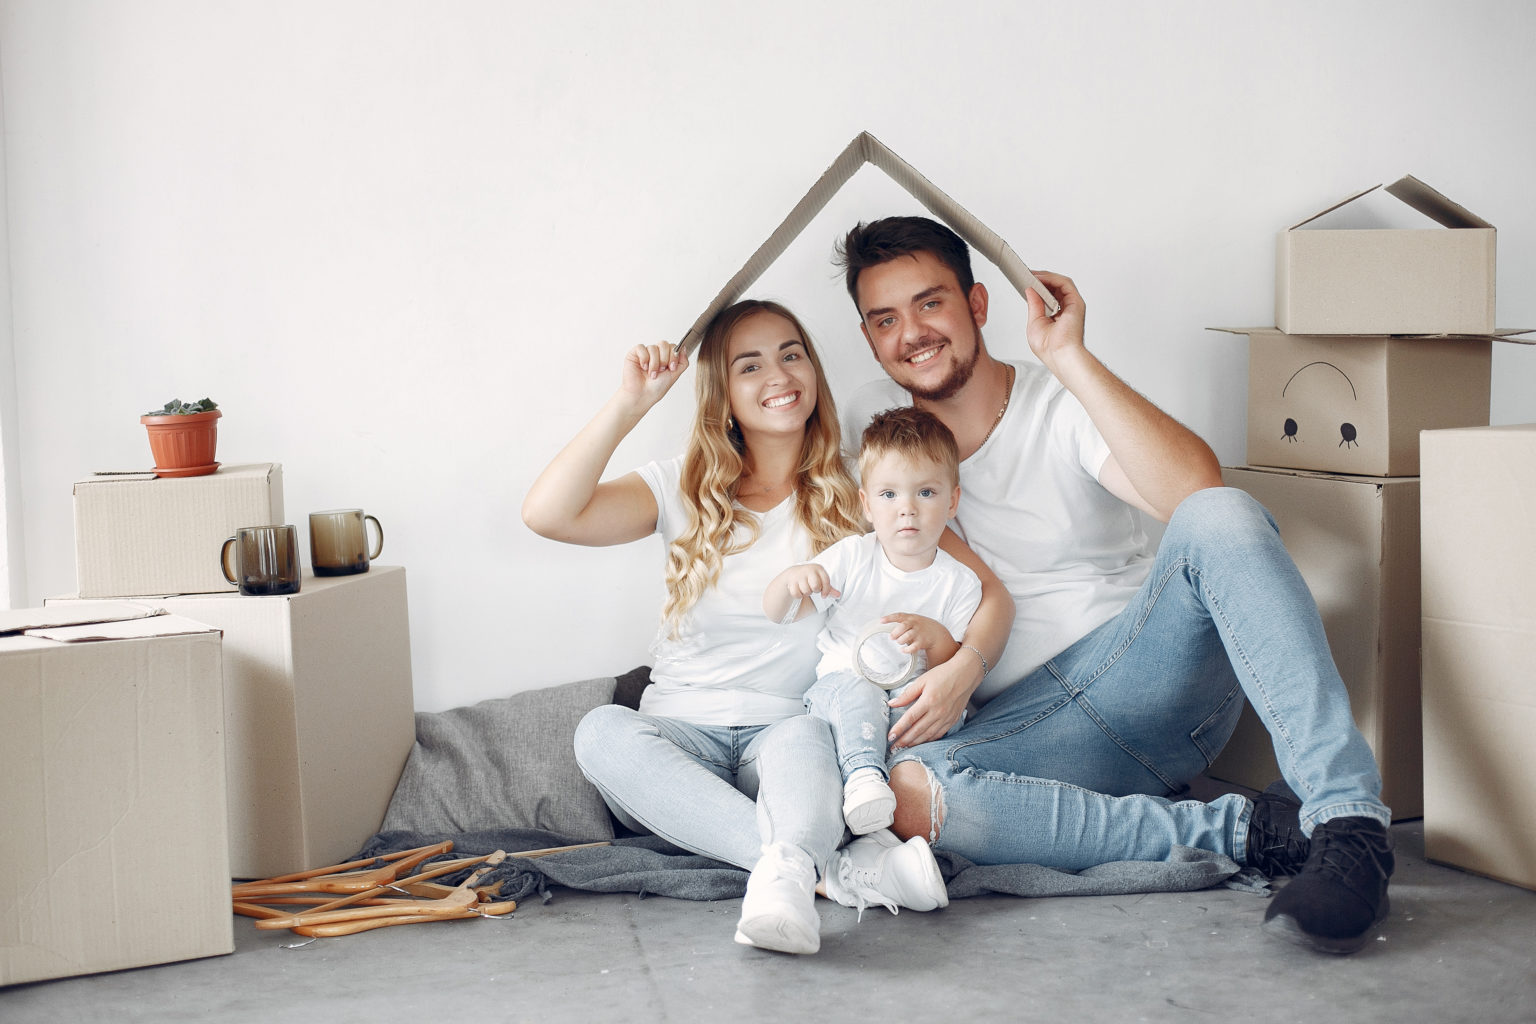 family-moving-using-boxes-1536x1024-1